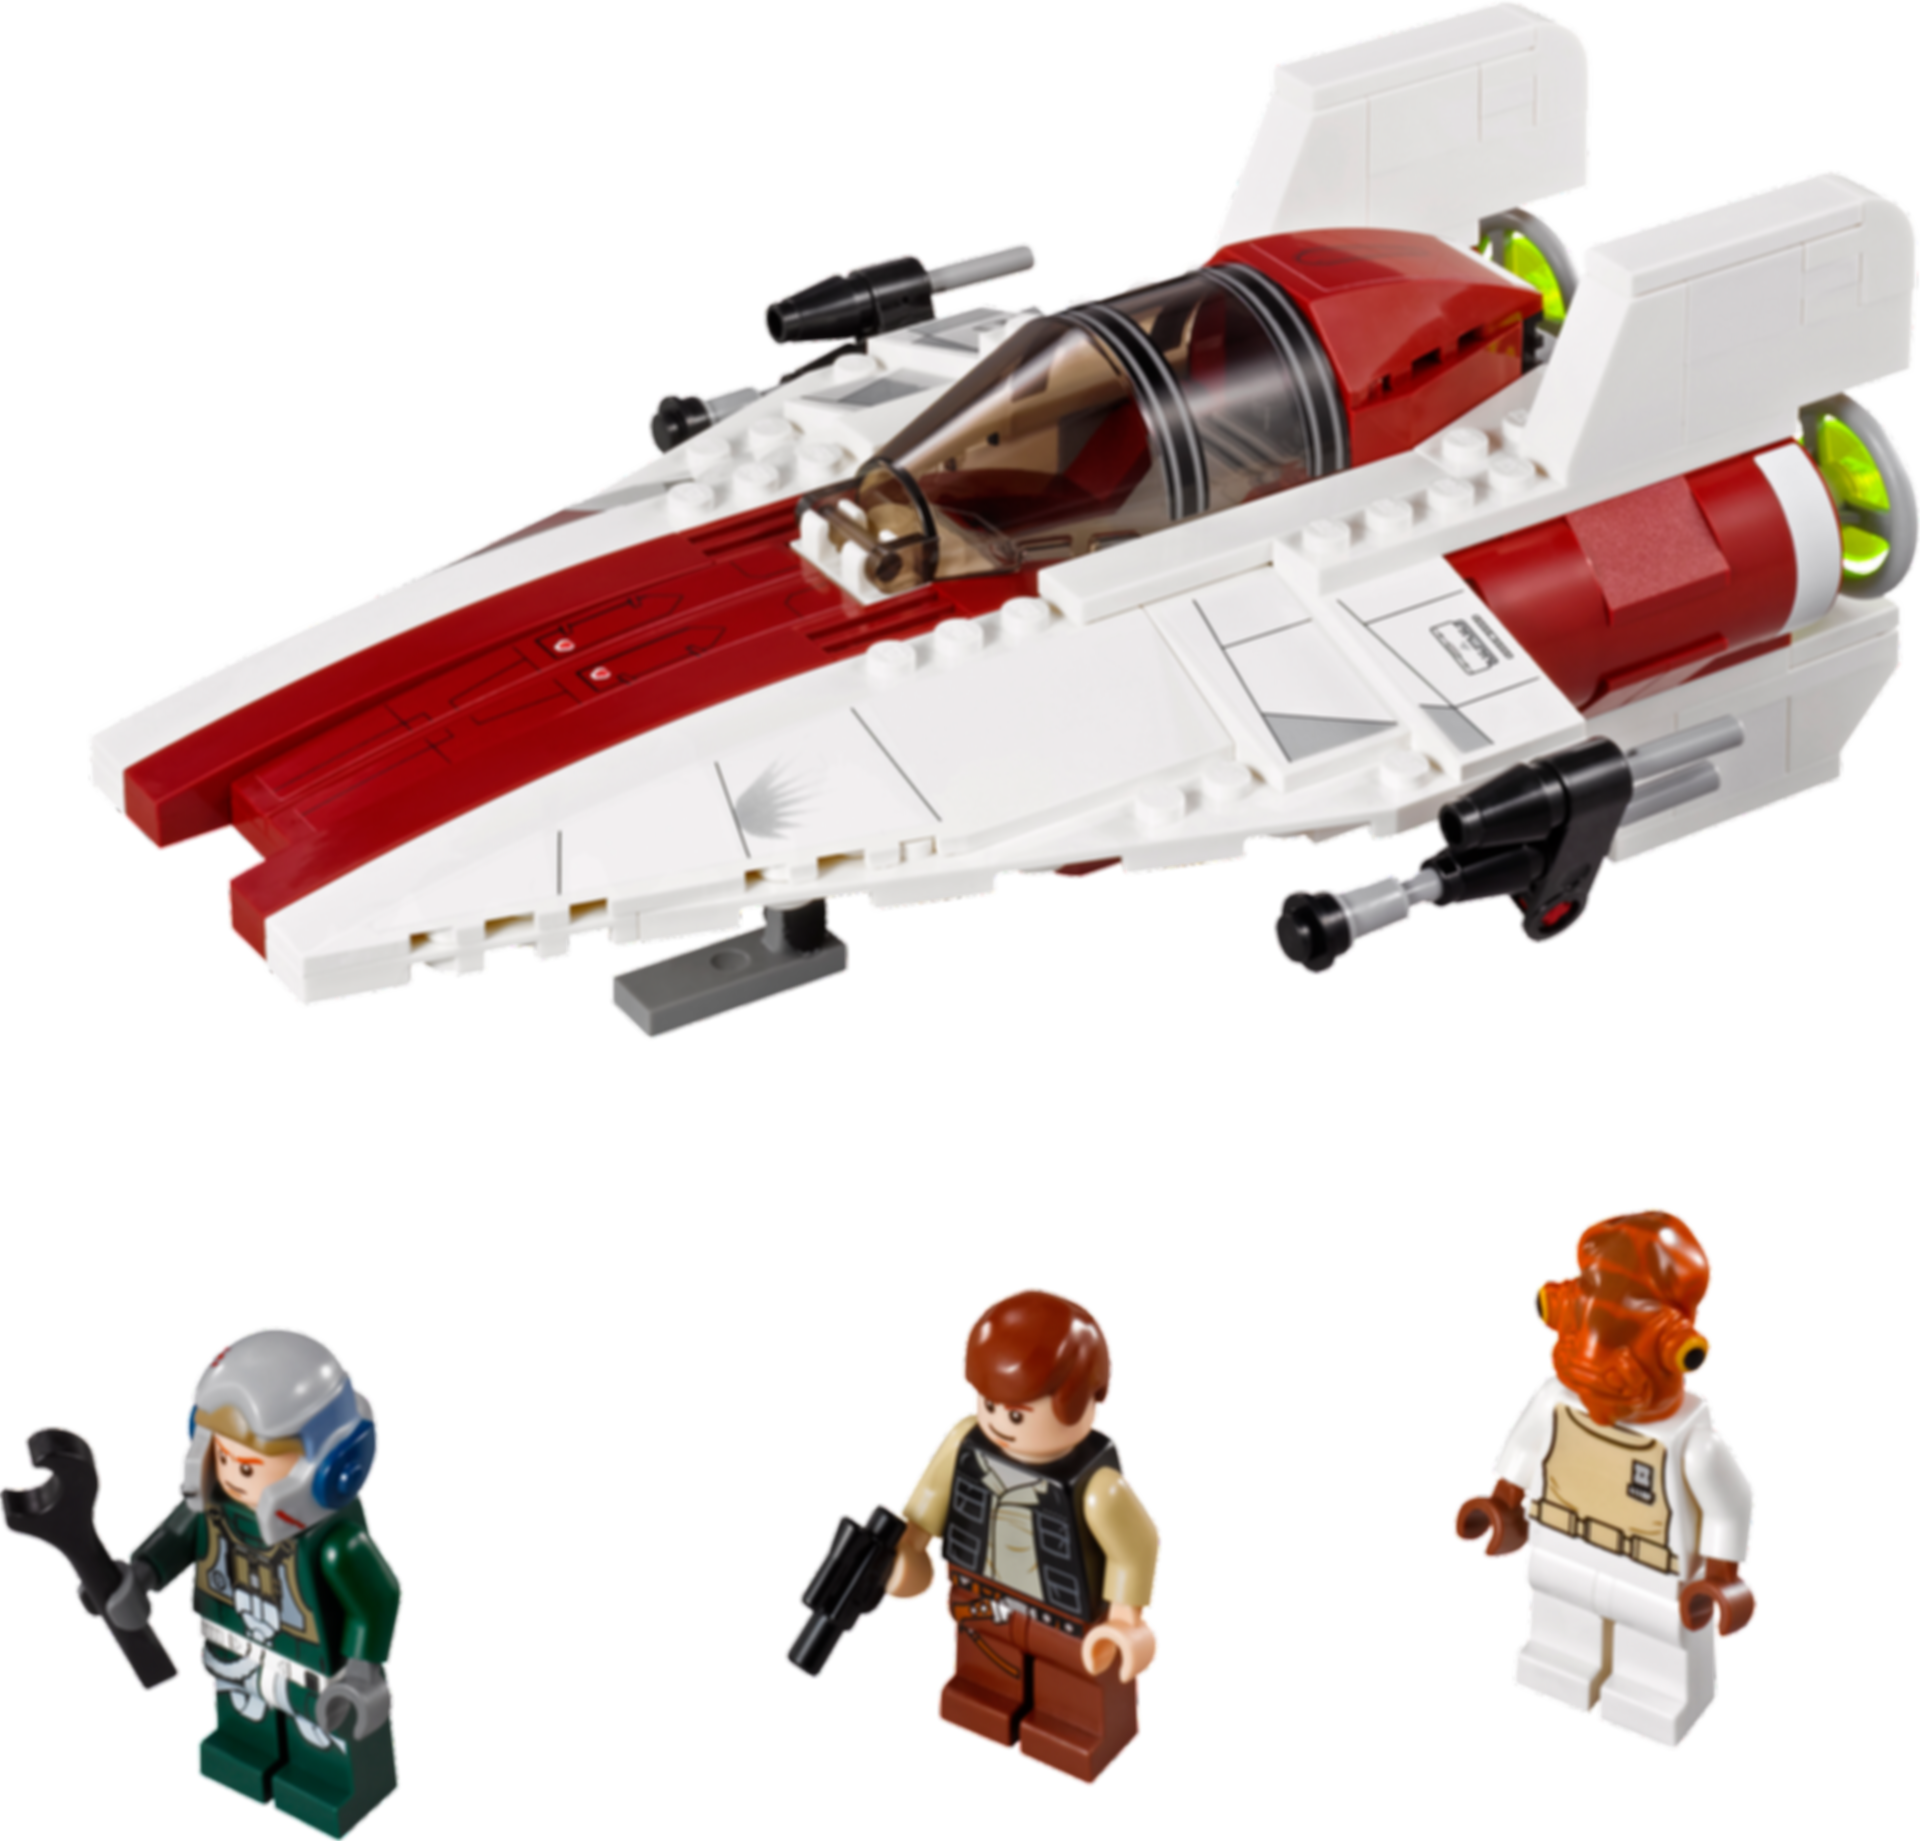 LEGO® Star Wars A-wing Starfighter components